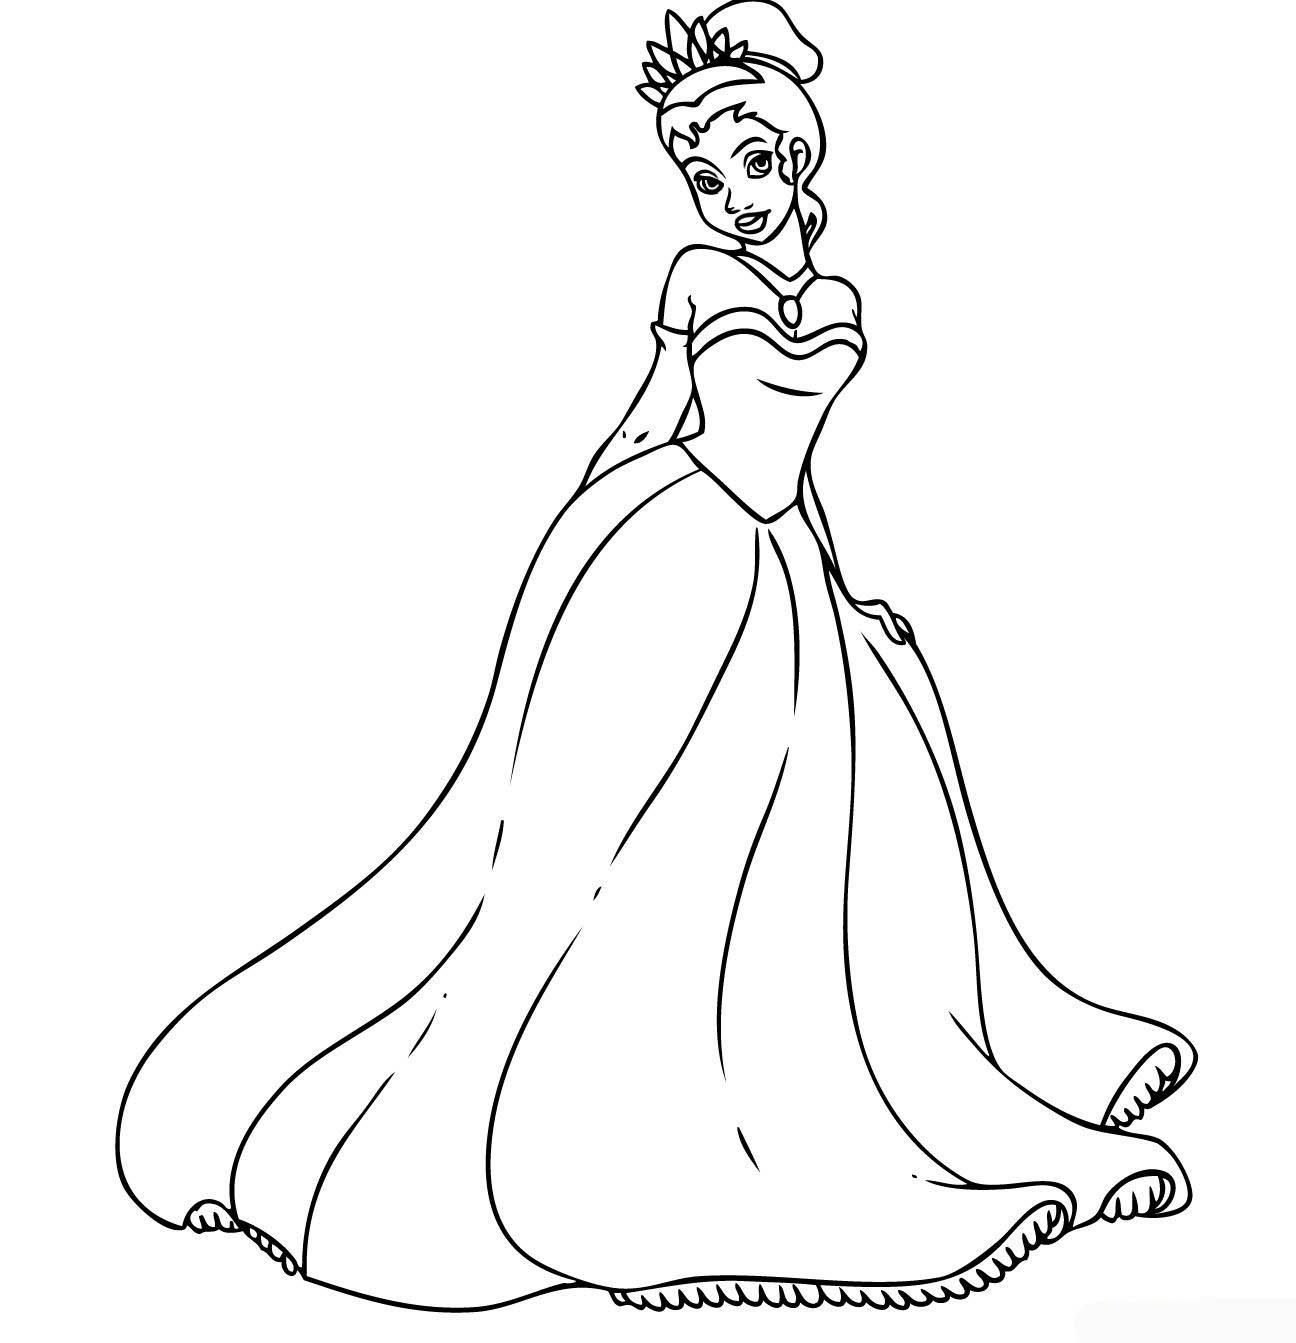 Disney Tiana Hot | Disney Princess Tiana Coloring Pages To Girls ...